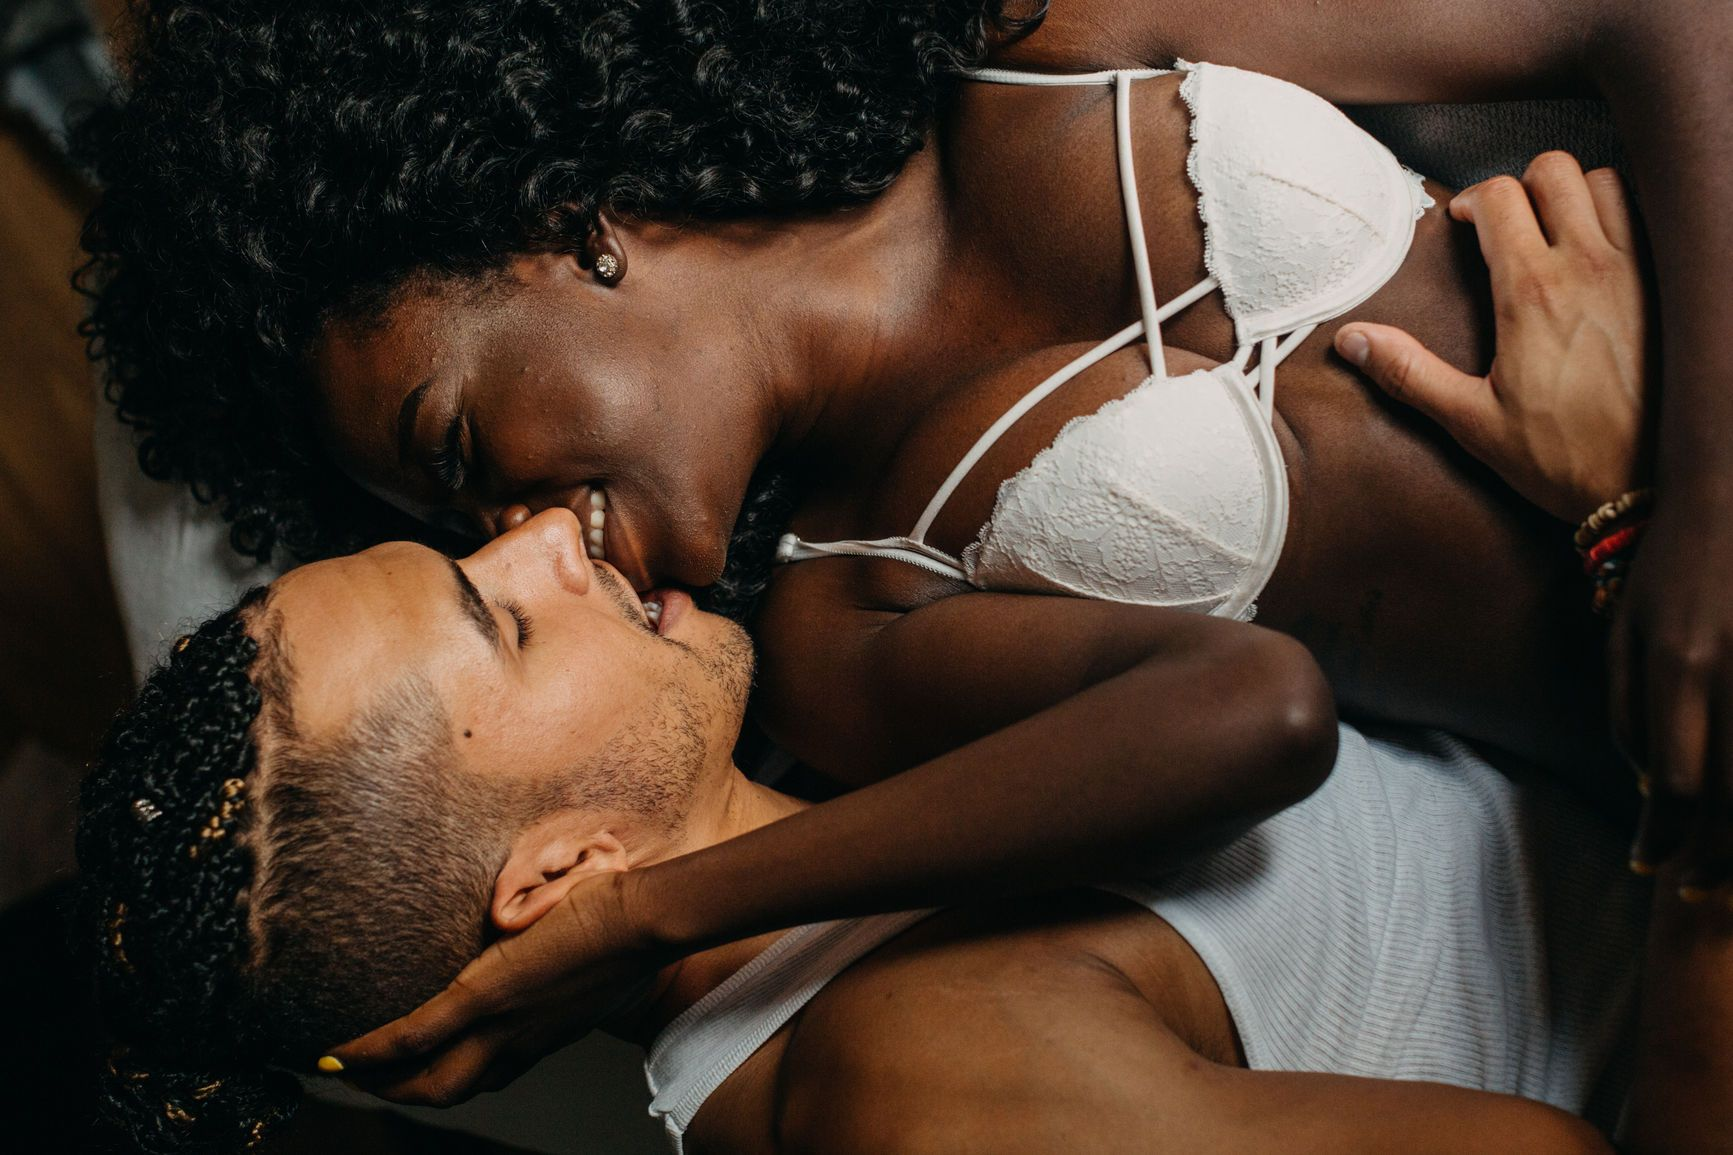 Should You Have Sex With an Ex? Here's What Experts Have to Say